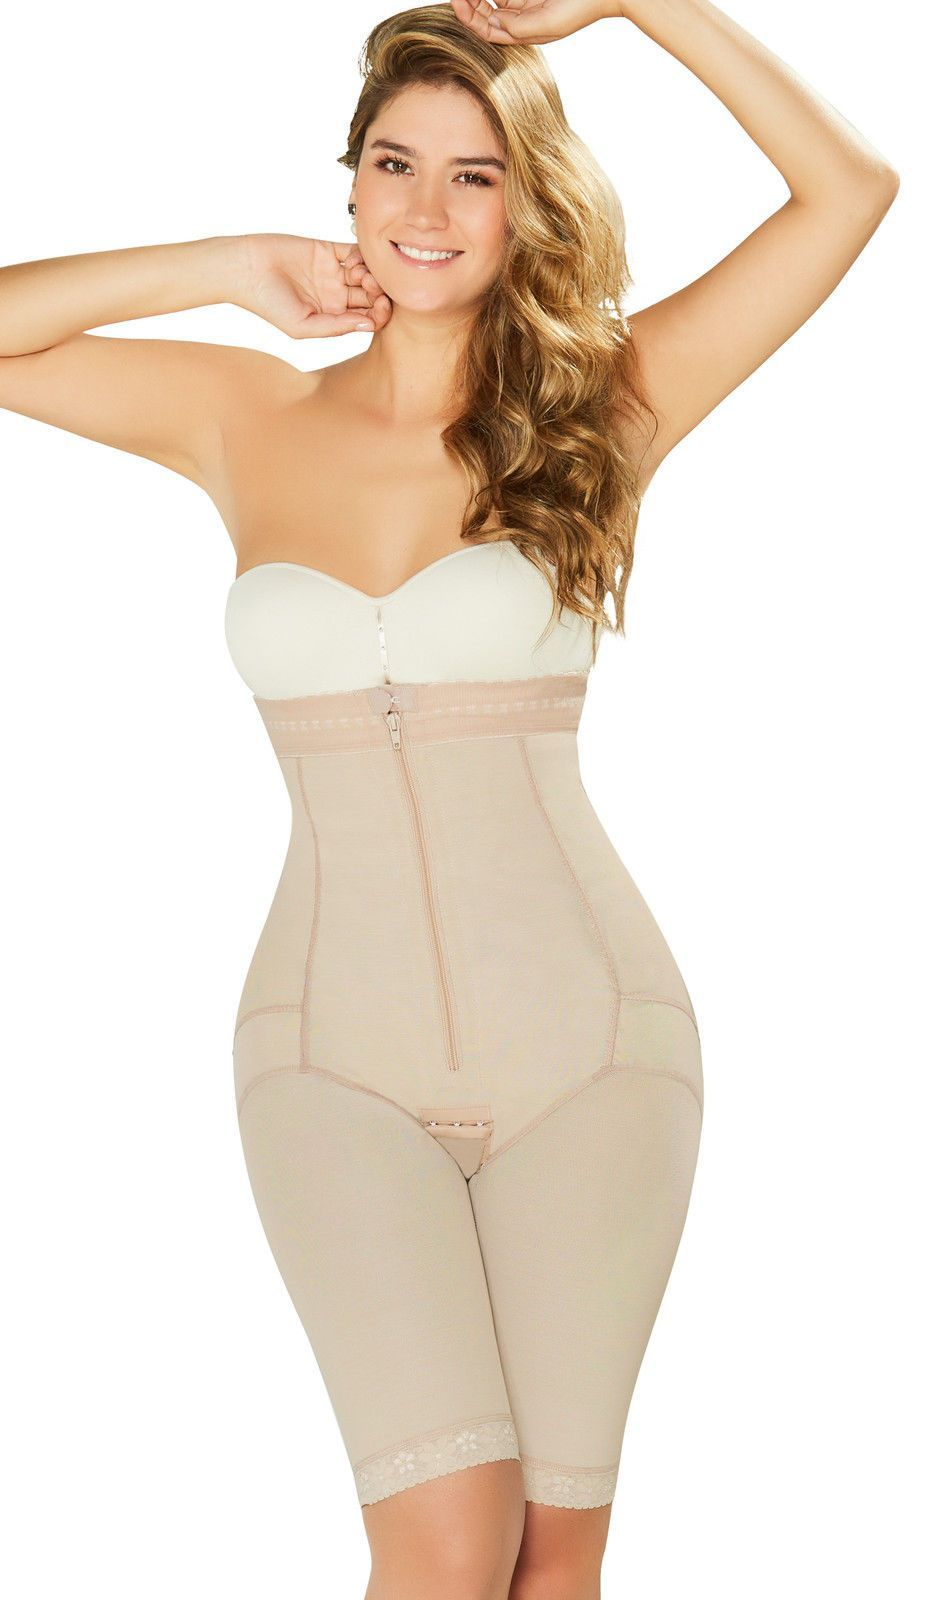 c2a4875985ee7 Fajas Diane   Geordi 2414 Colombiana Powernet Strapless Body Shaper With  Lace